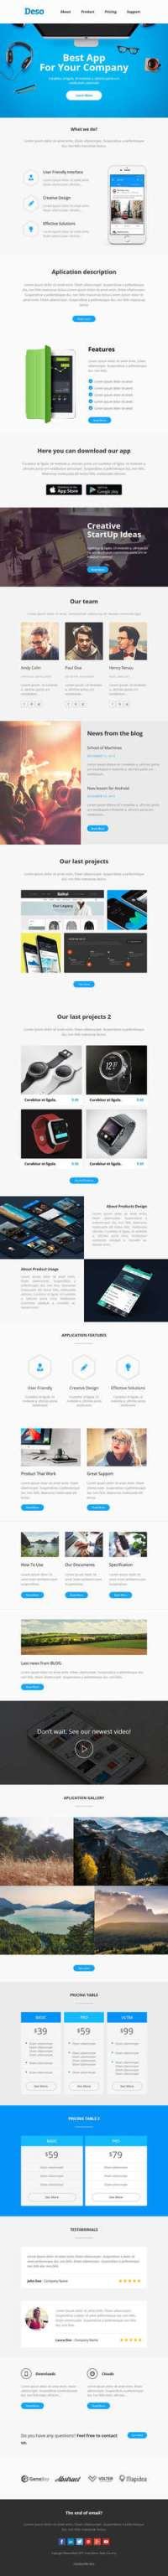 Deso - Responsive Email and Newsletter Template